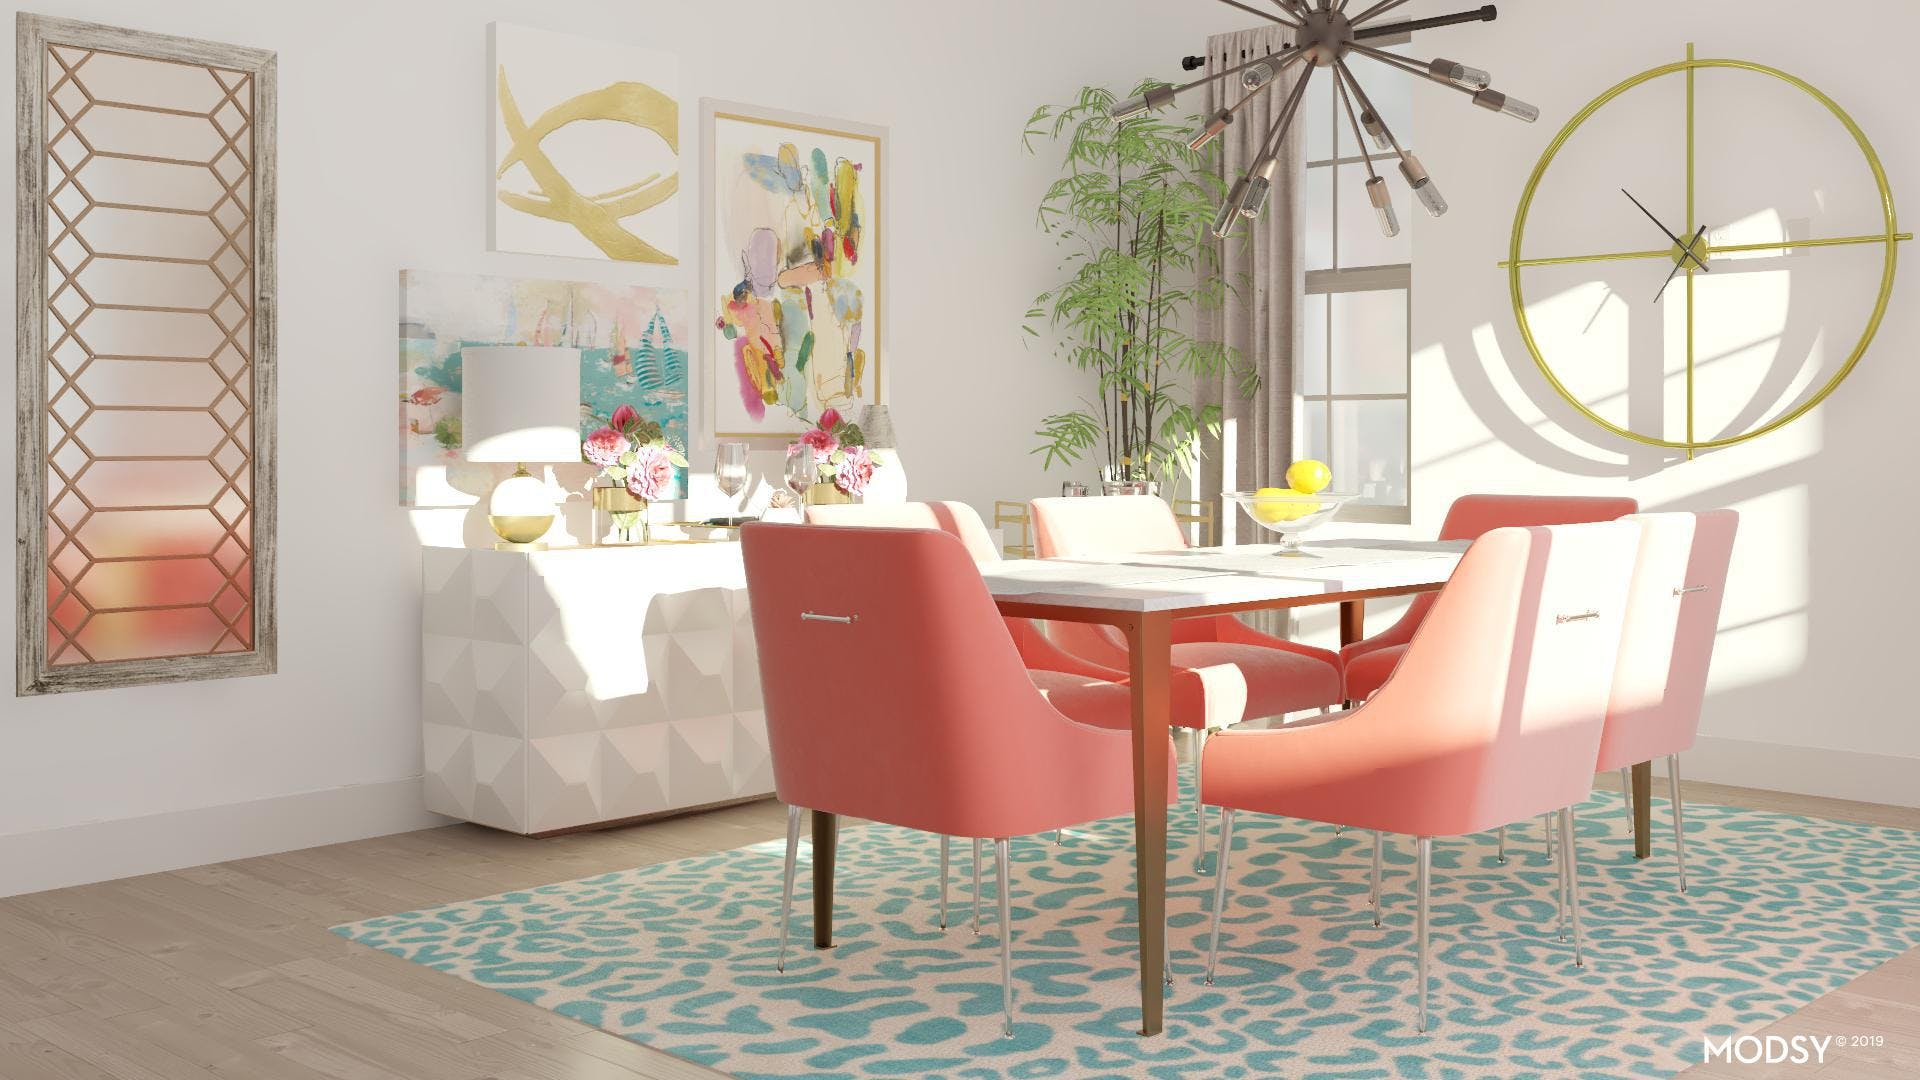 Give Your Glam Dining Room a Pop of Pastel